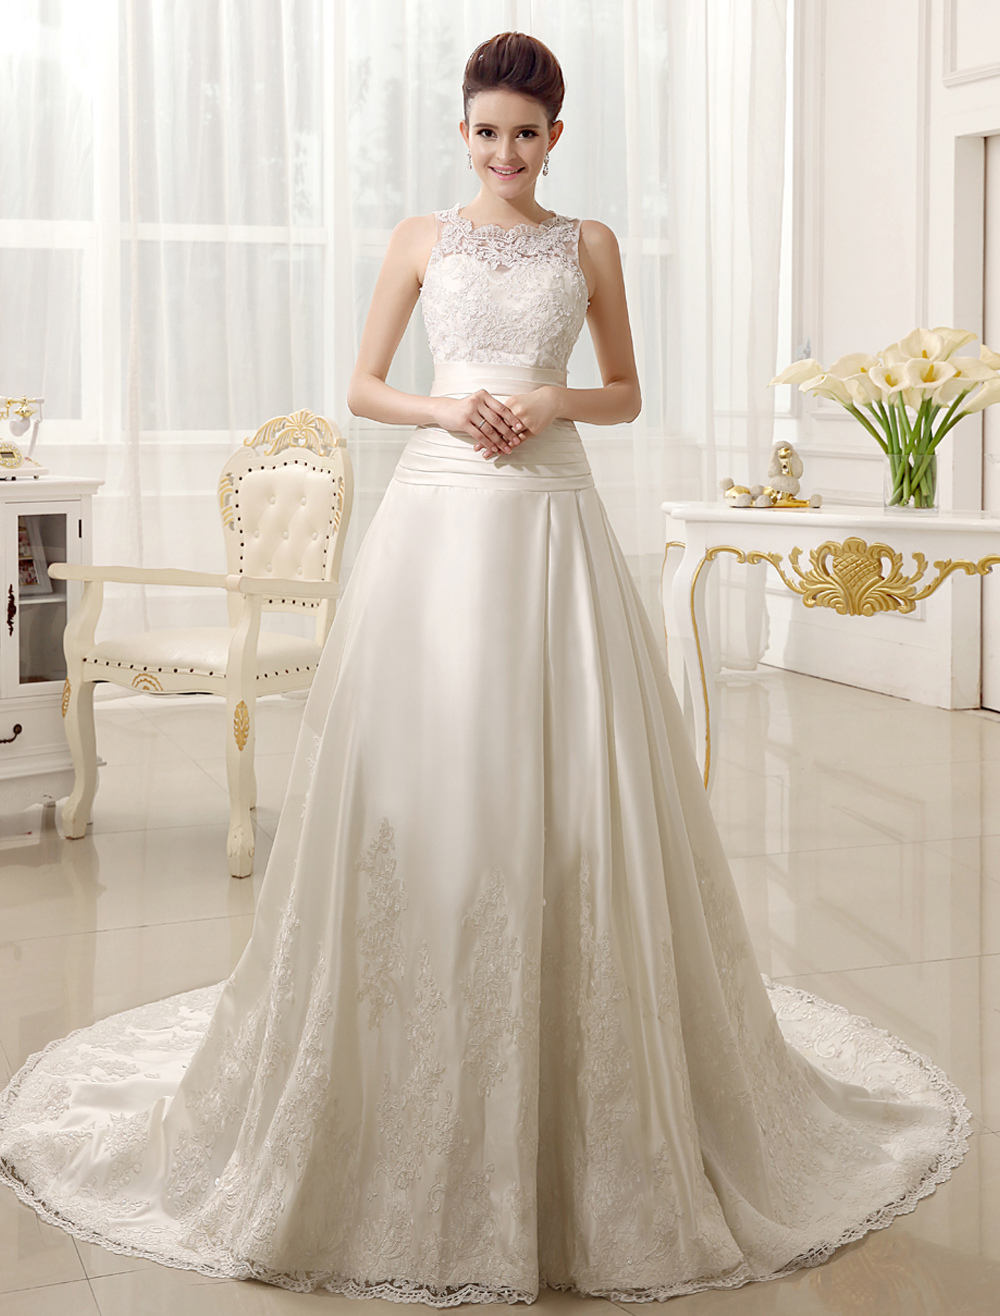 Classic Ivory A-line Court Train Bridal Wedding Dress with Jewel Neck